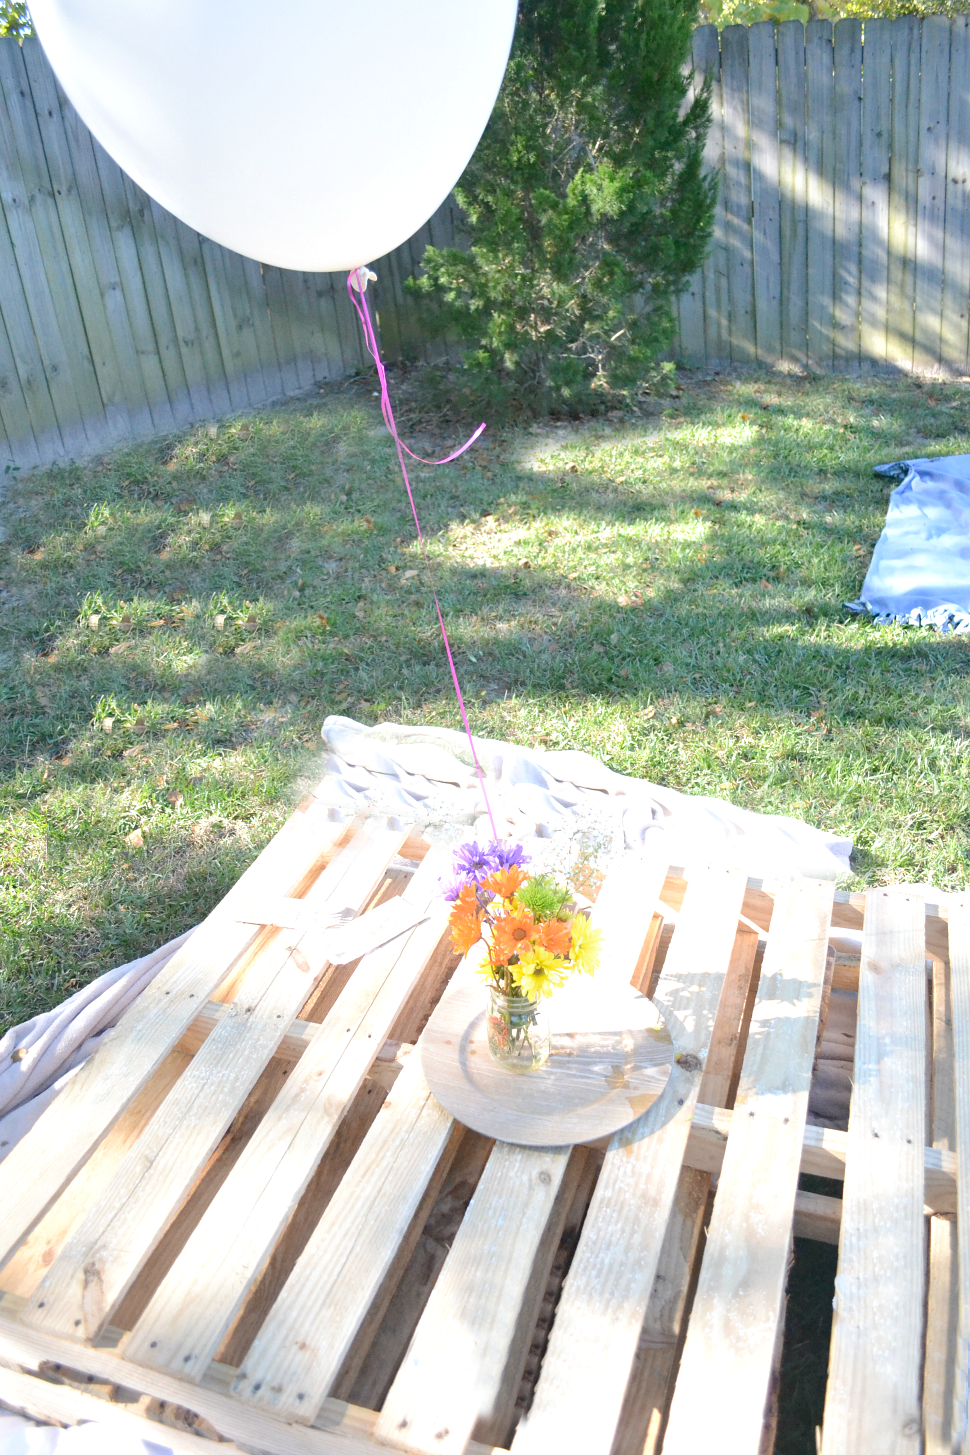 fawn over baby a peppa pig themed backyard birthday picnic